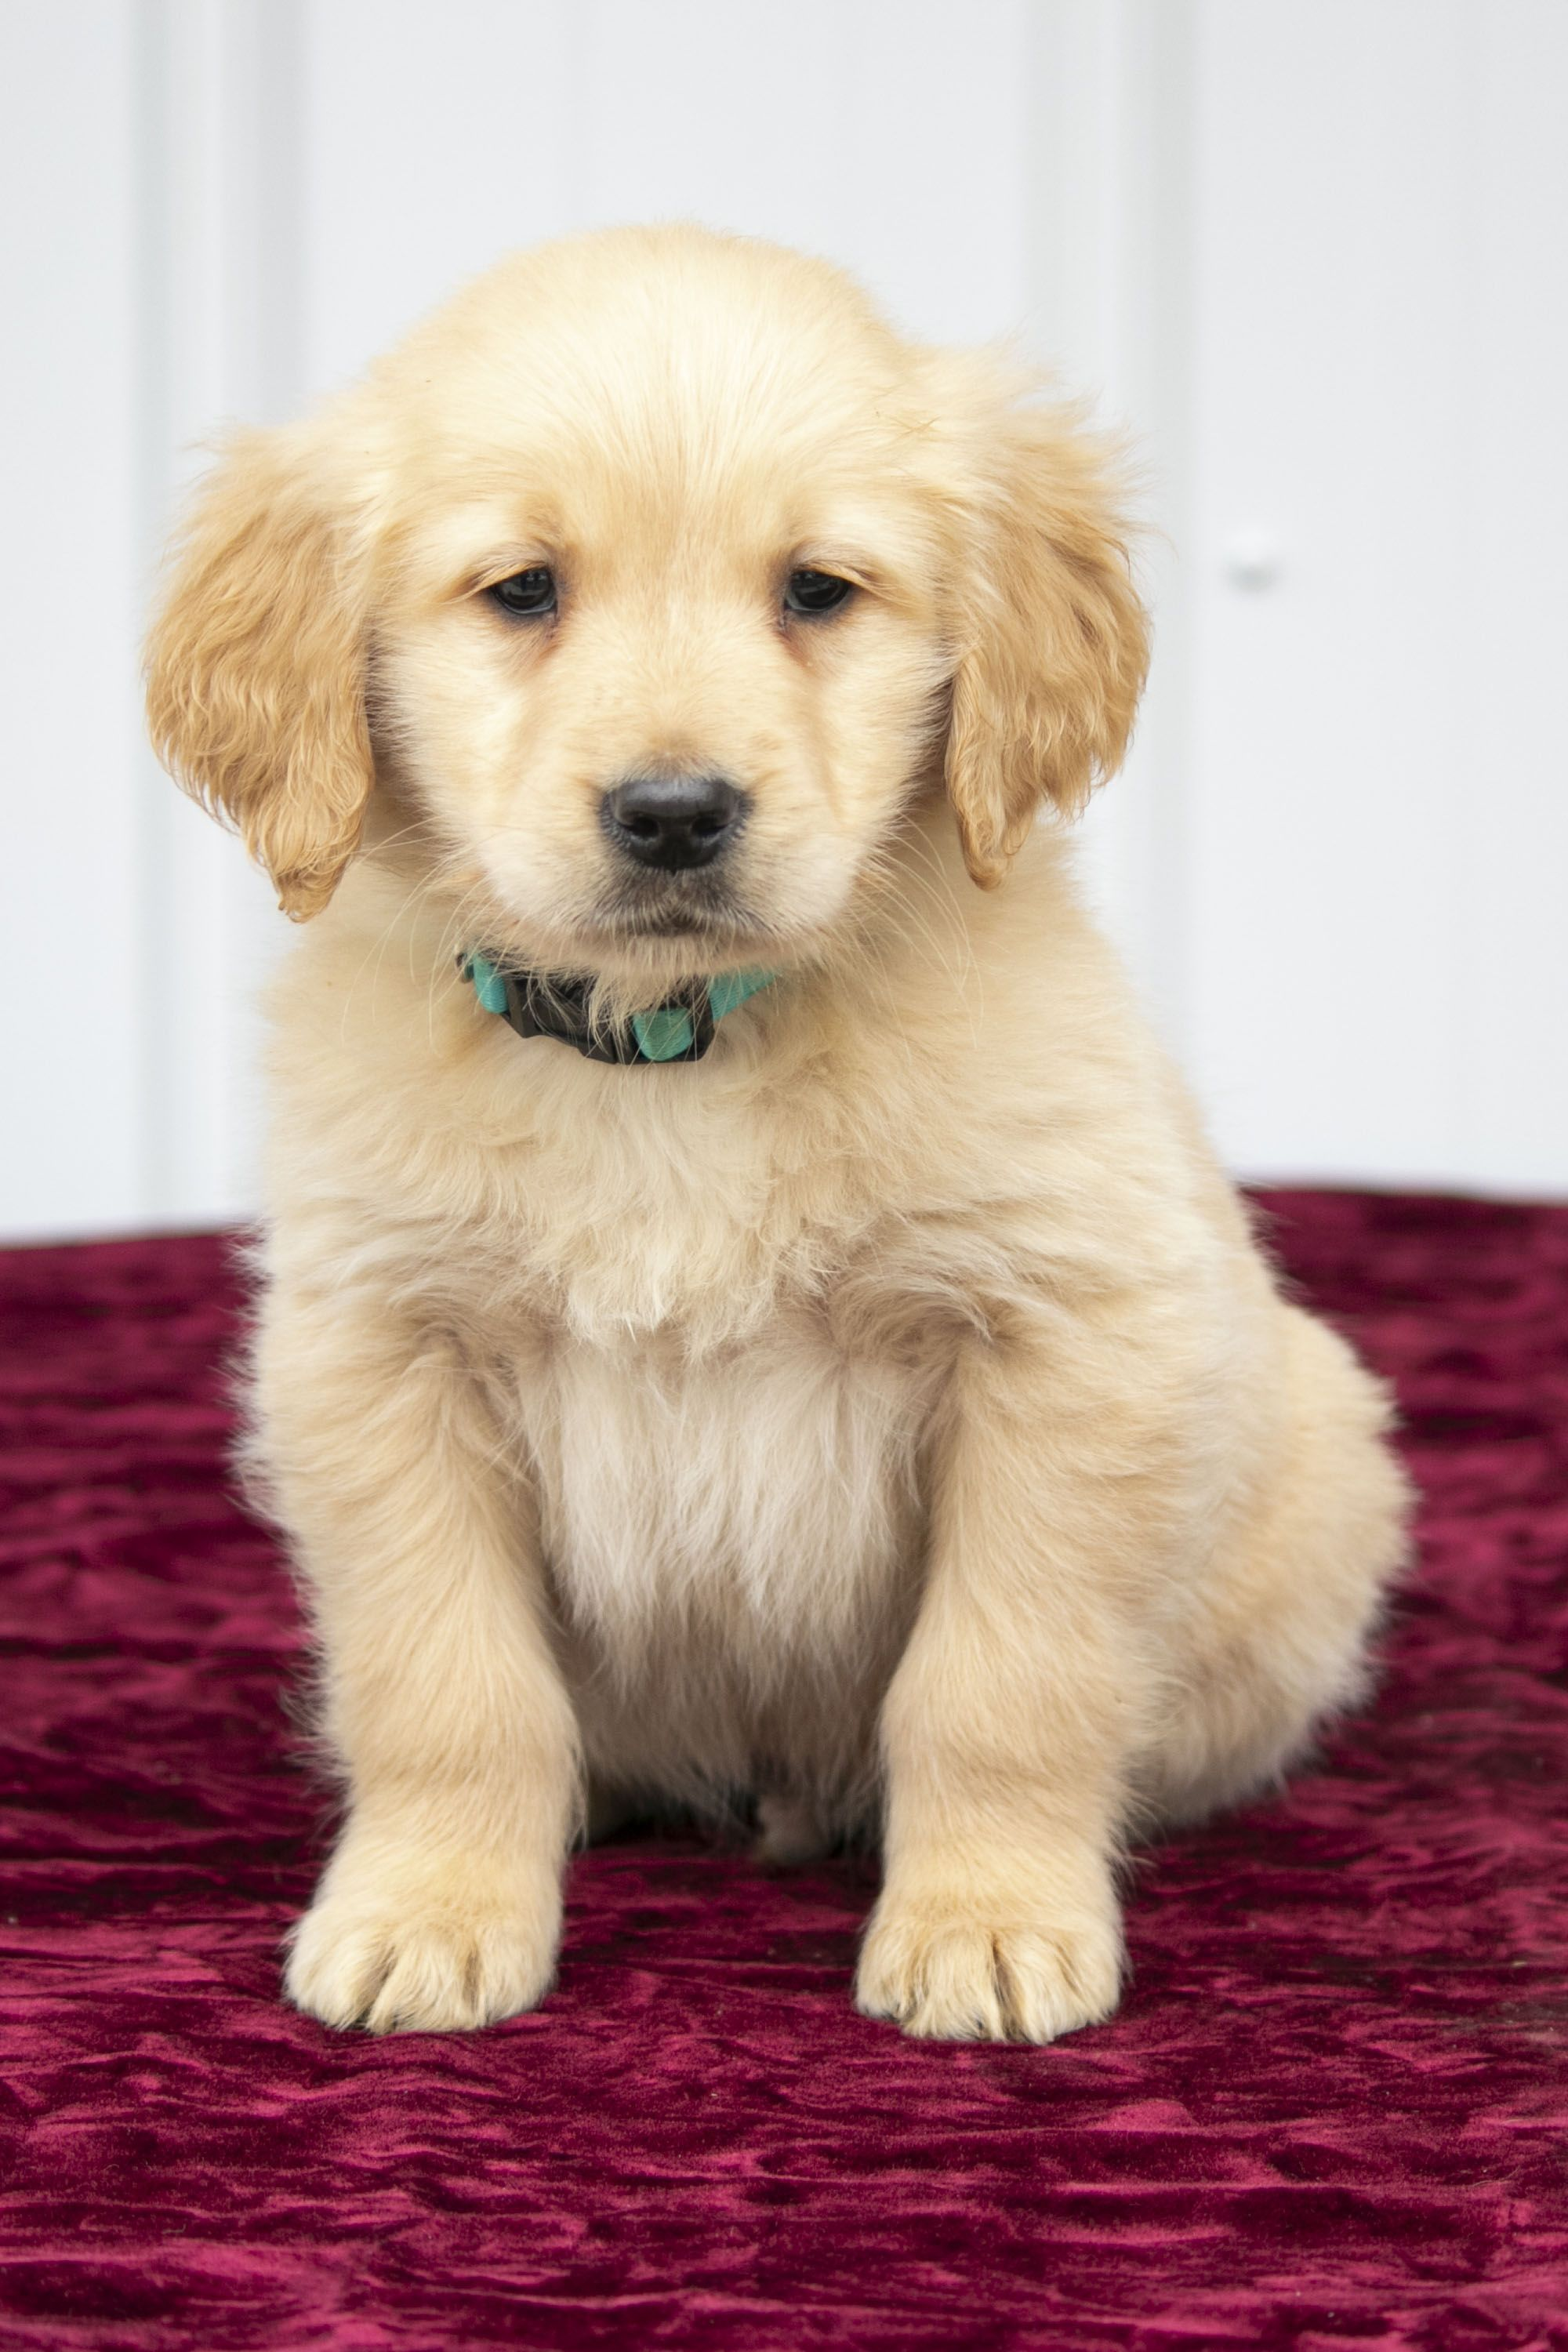 Pin By Brooke On Dog Retriever Puppy Puppies Lancaster Puppies